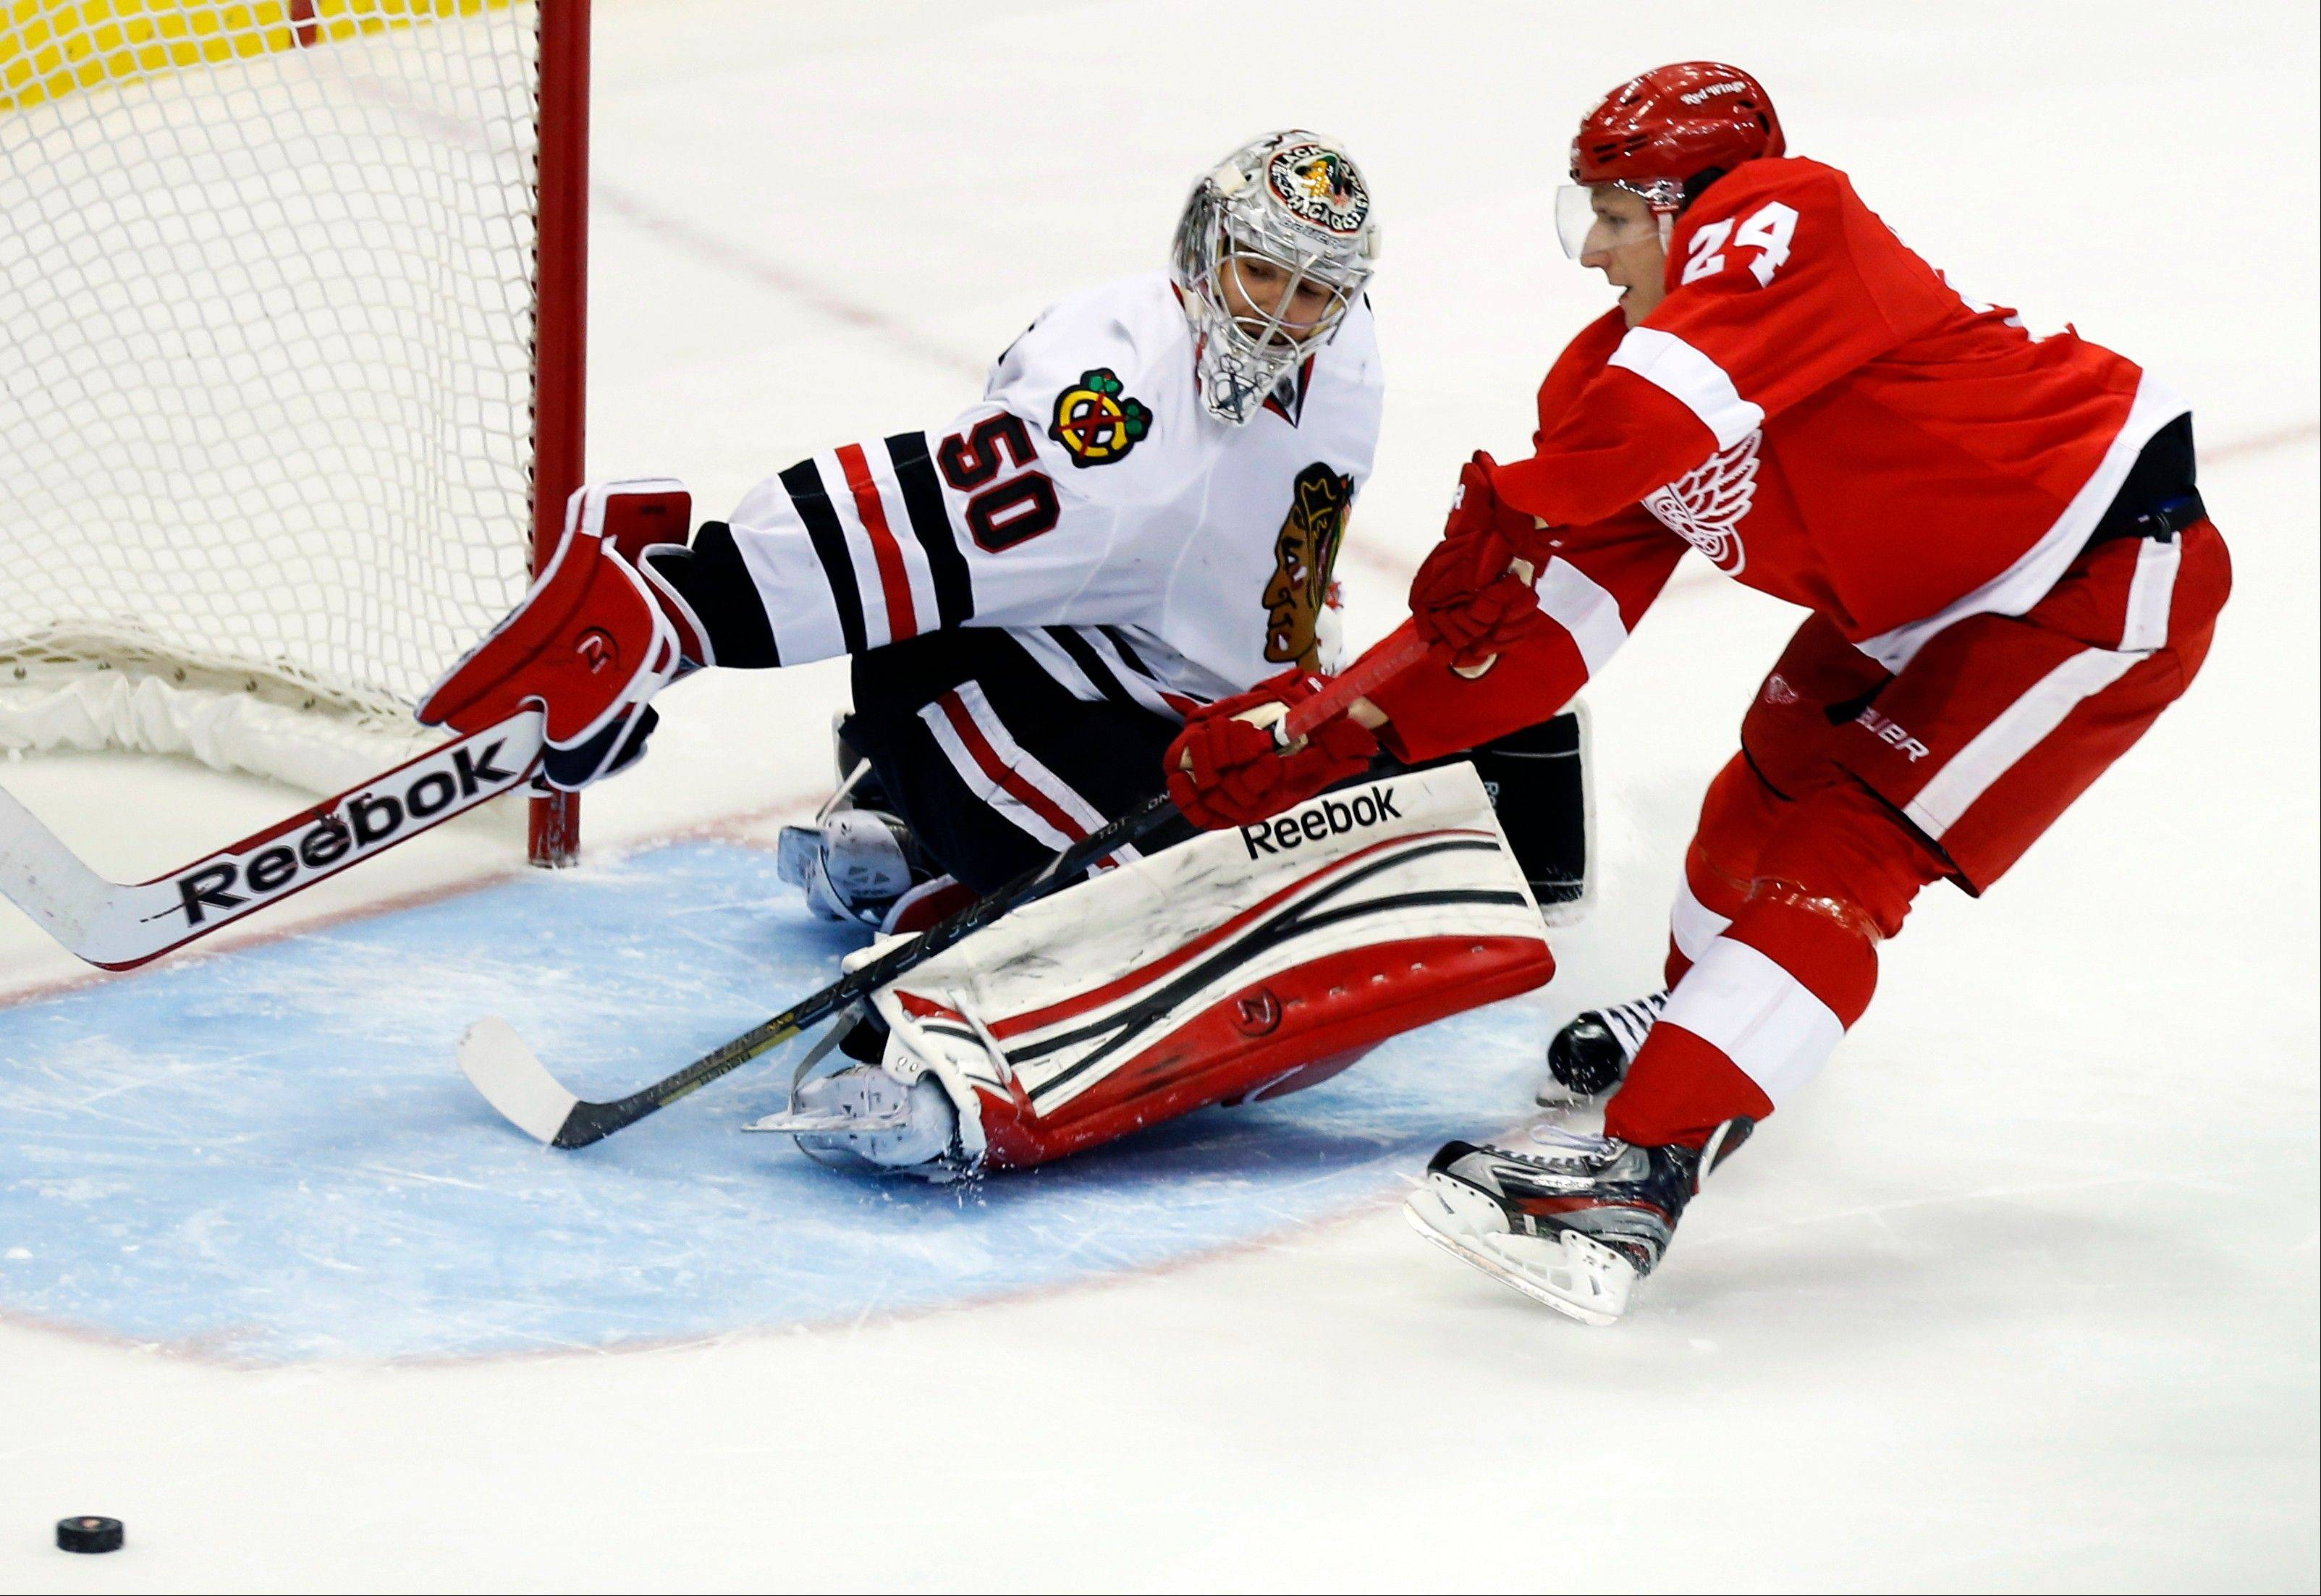 Blackhawks goalie Corey Crawford (50) deflects a shot by Detroit Red Wings center Damien Brunner (24) during the shootout of an NHL hockey game, Sunday, March 3, 2013, in Detroit. The Blackhawks won 2-1.